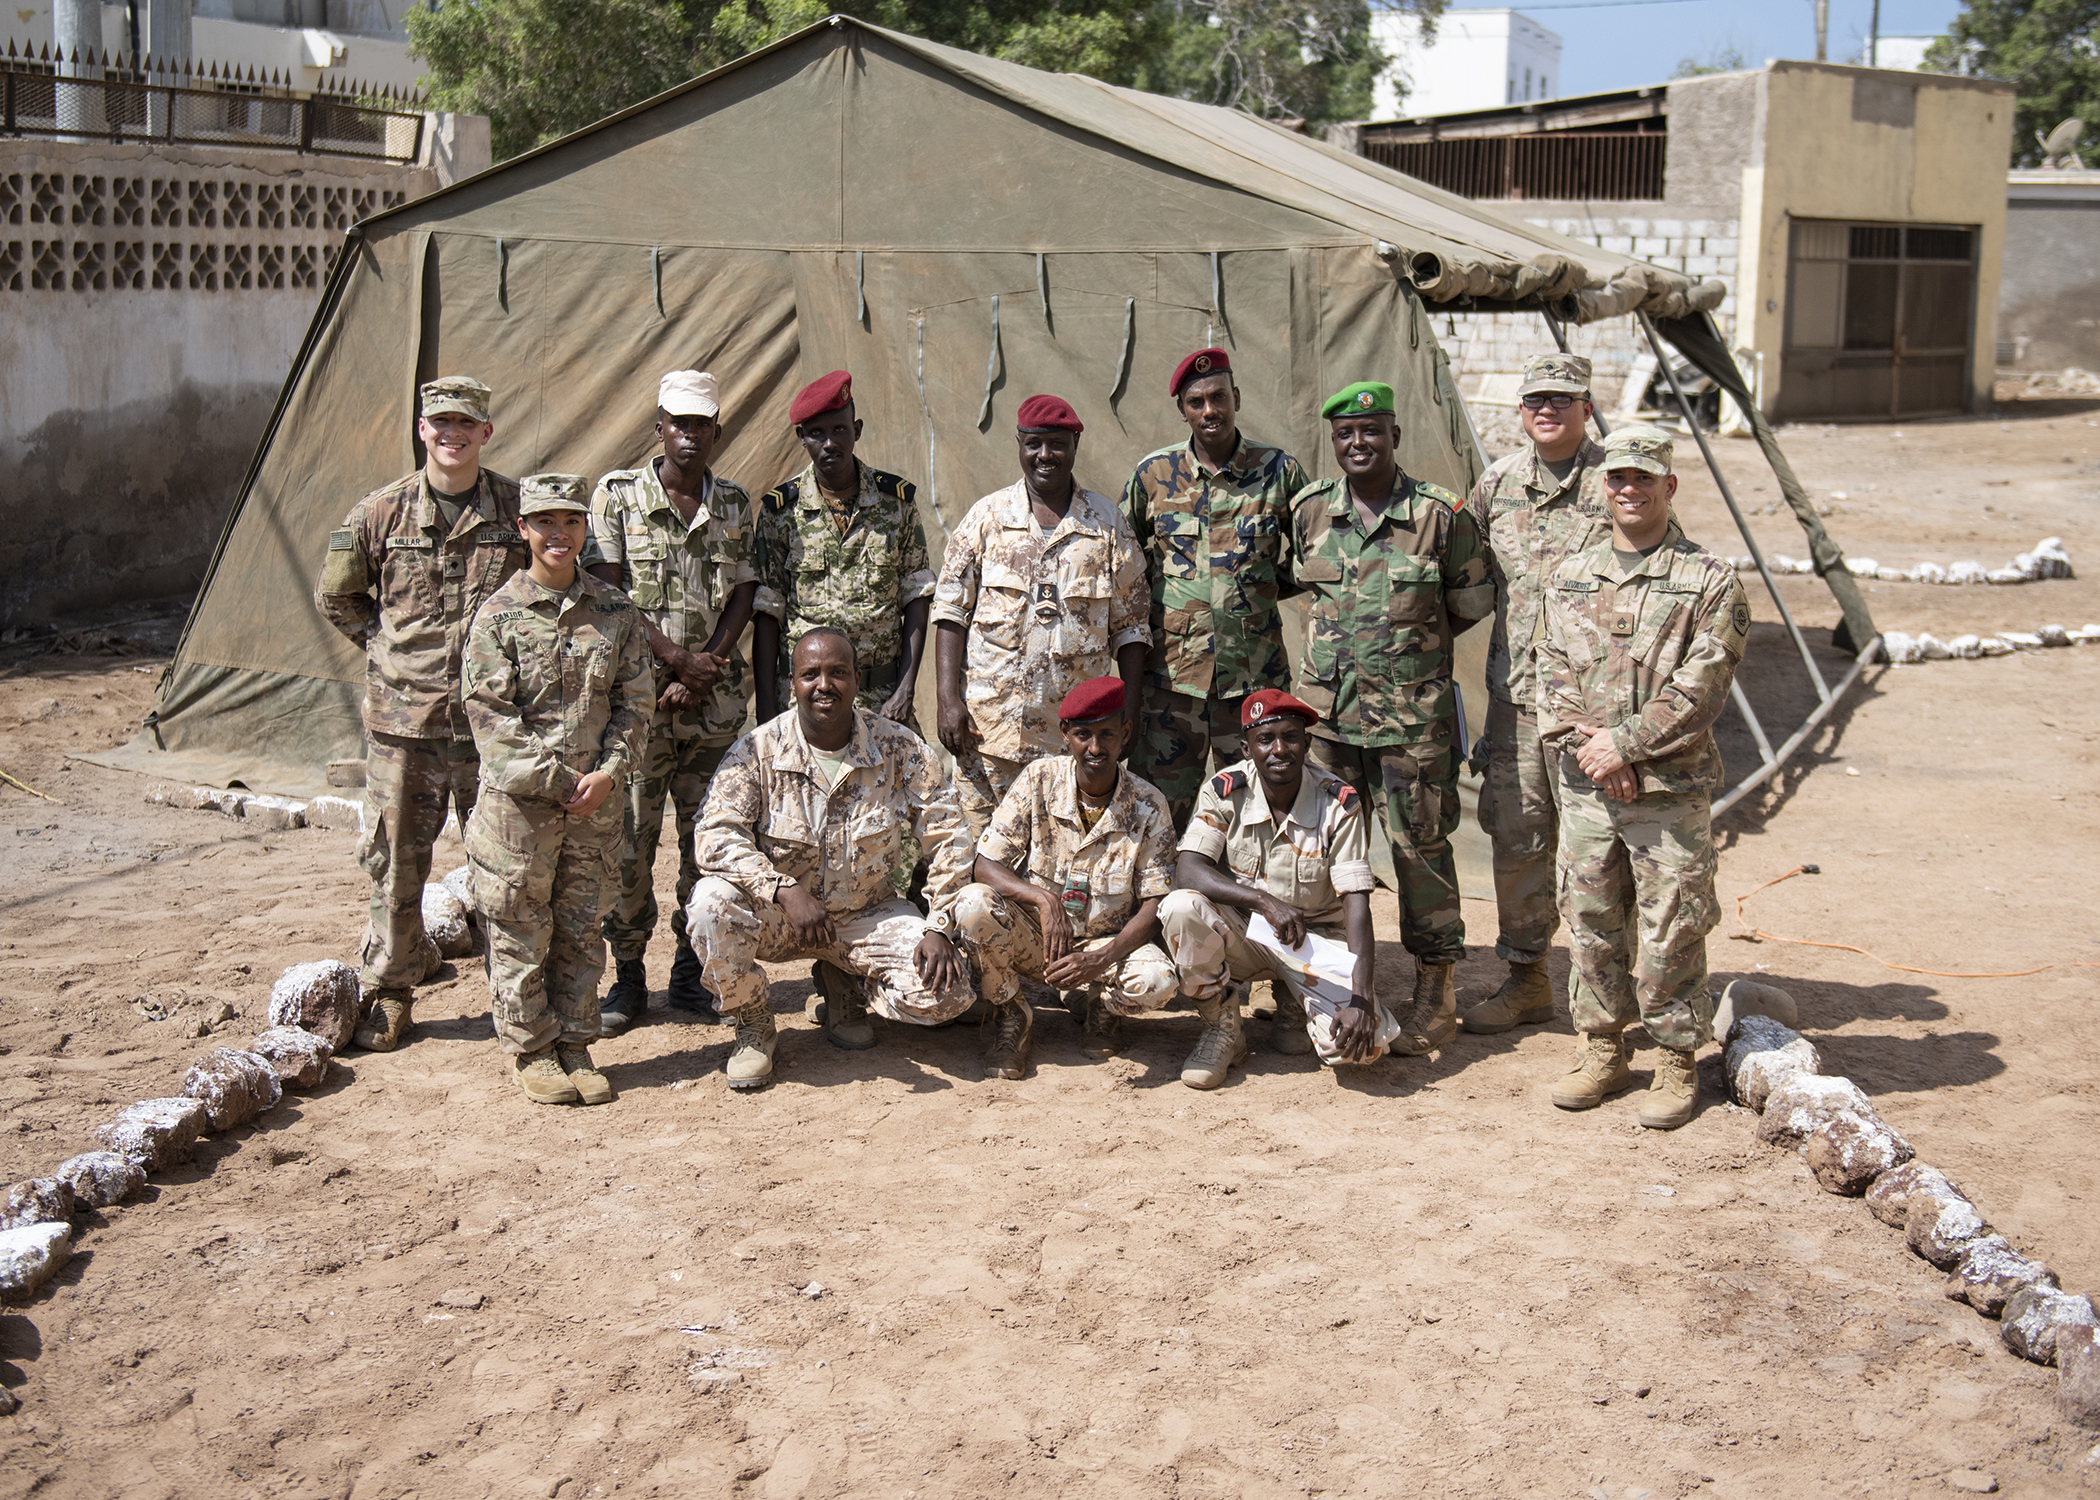 Djibouti Army (FAD) soldiers pose with U.S. Army Soldiers from the Combined Joint Task Force-Horn of Africa communications directorate, after working together to set up a satellite unit during an Africa Data Sharing Network (ADSN), version two, information exchange with FAD soldiers at FAD Headquarters, Djibouti, Dec. 26, 2018. The ADSN works as an internal network that the African Union Mission in Somalia troop-contributing countries can use to communicate and share information amongst each other. (U.S. Air Force photo by Tech. Sgt. Shawn Nickel)